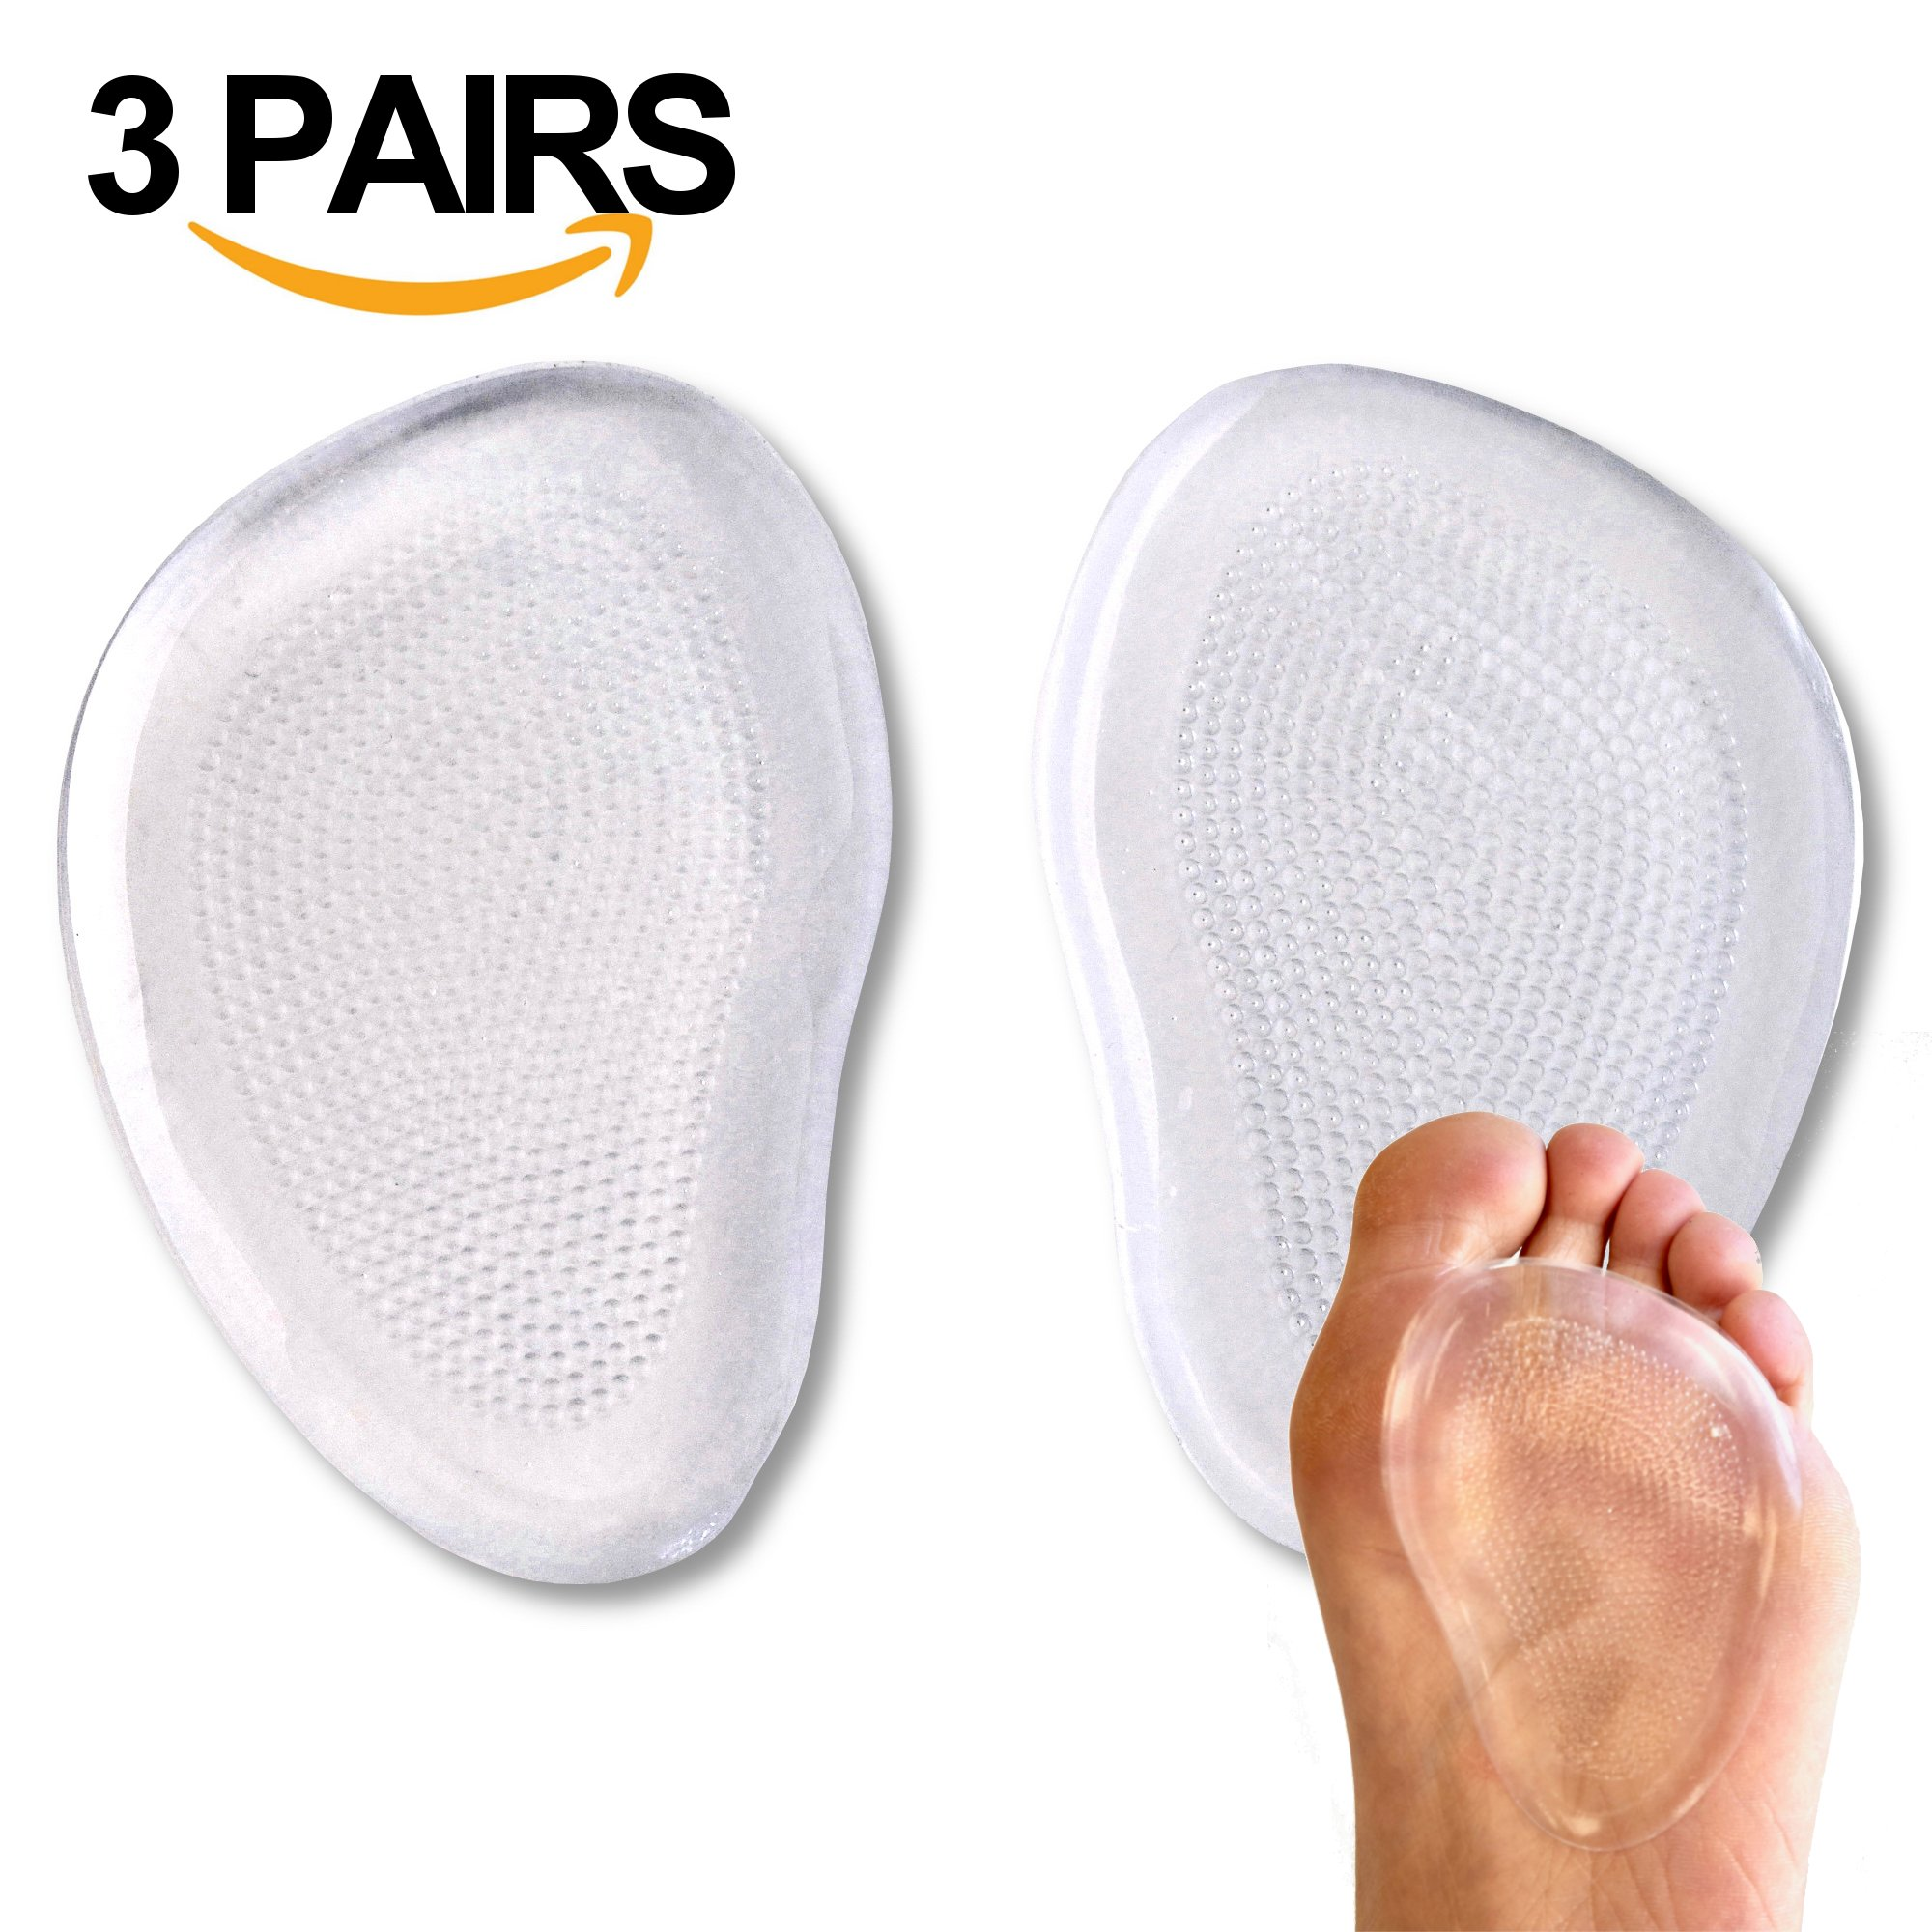 SHOP GIRL Foot Pads 3 Pieces-Gel Pad -Metatarsal Pads pain Relief for high heel, dancers high heel, sports shoes, other shoes